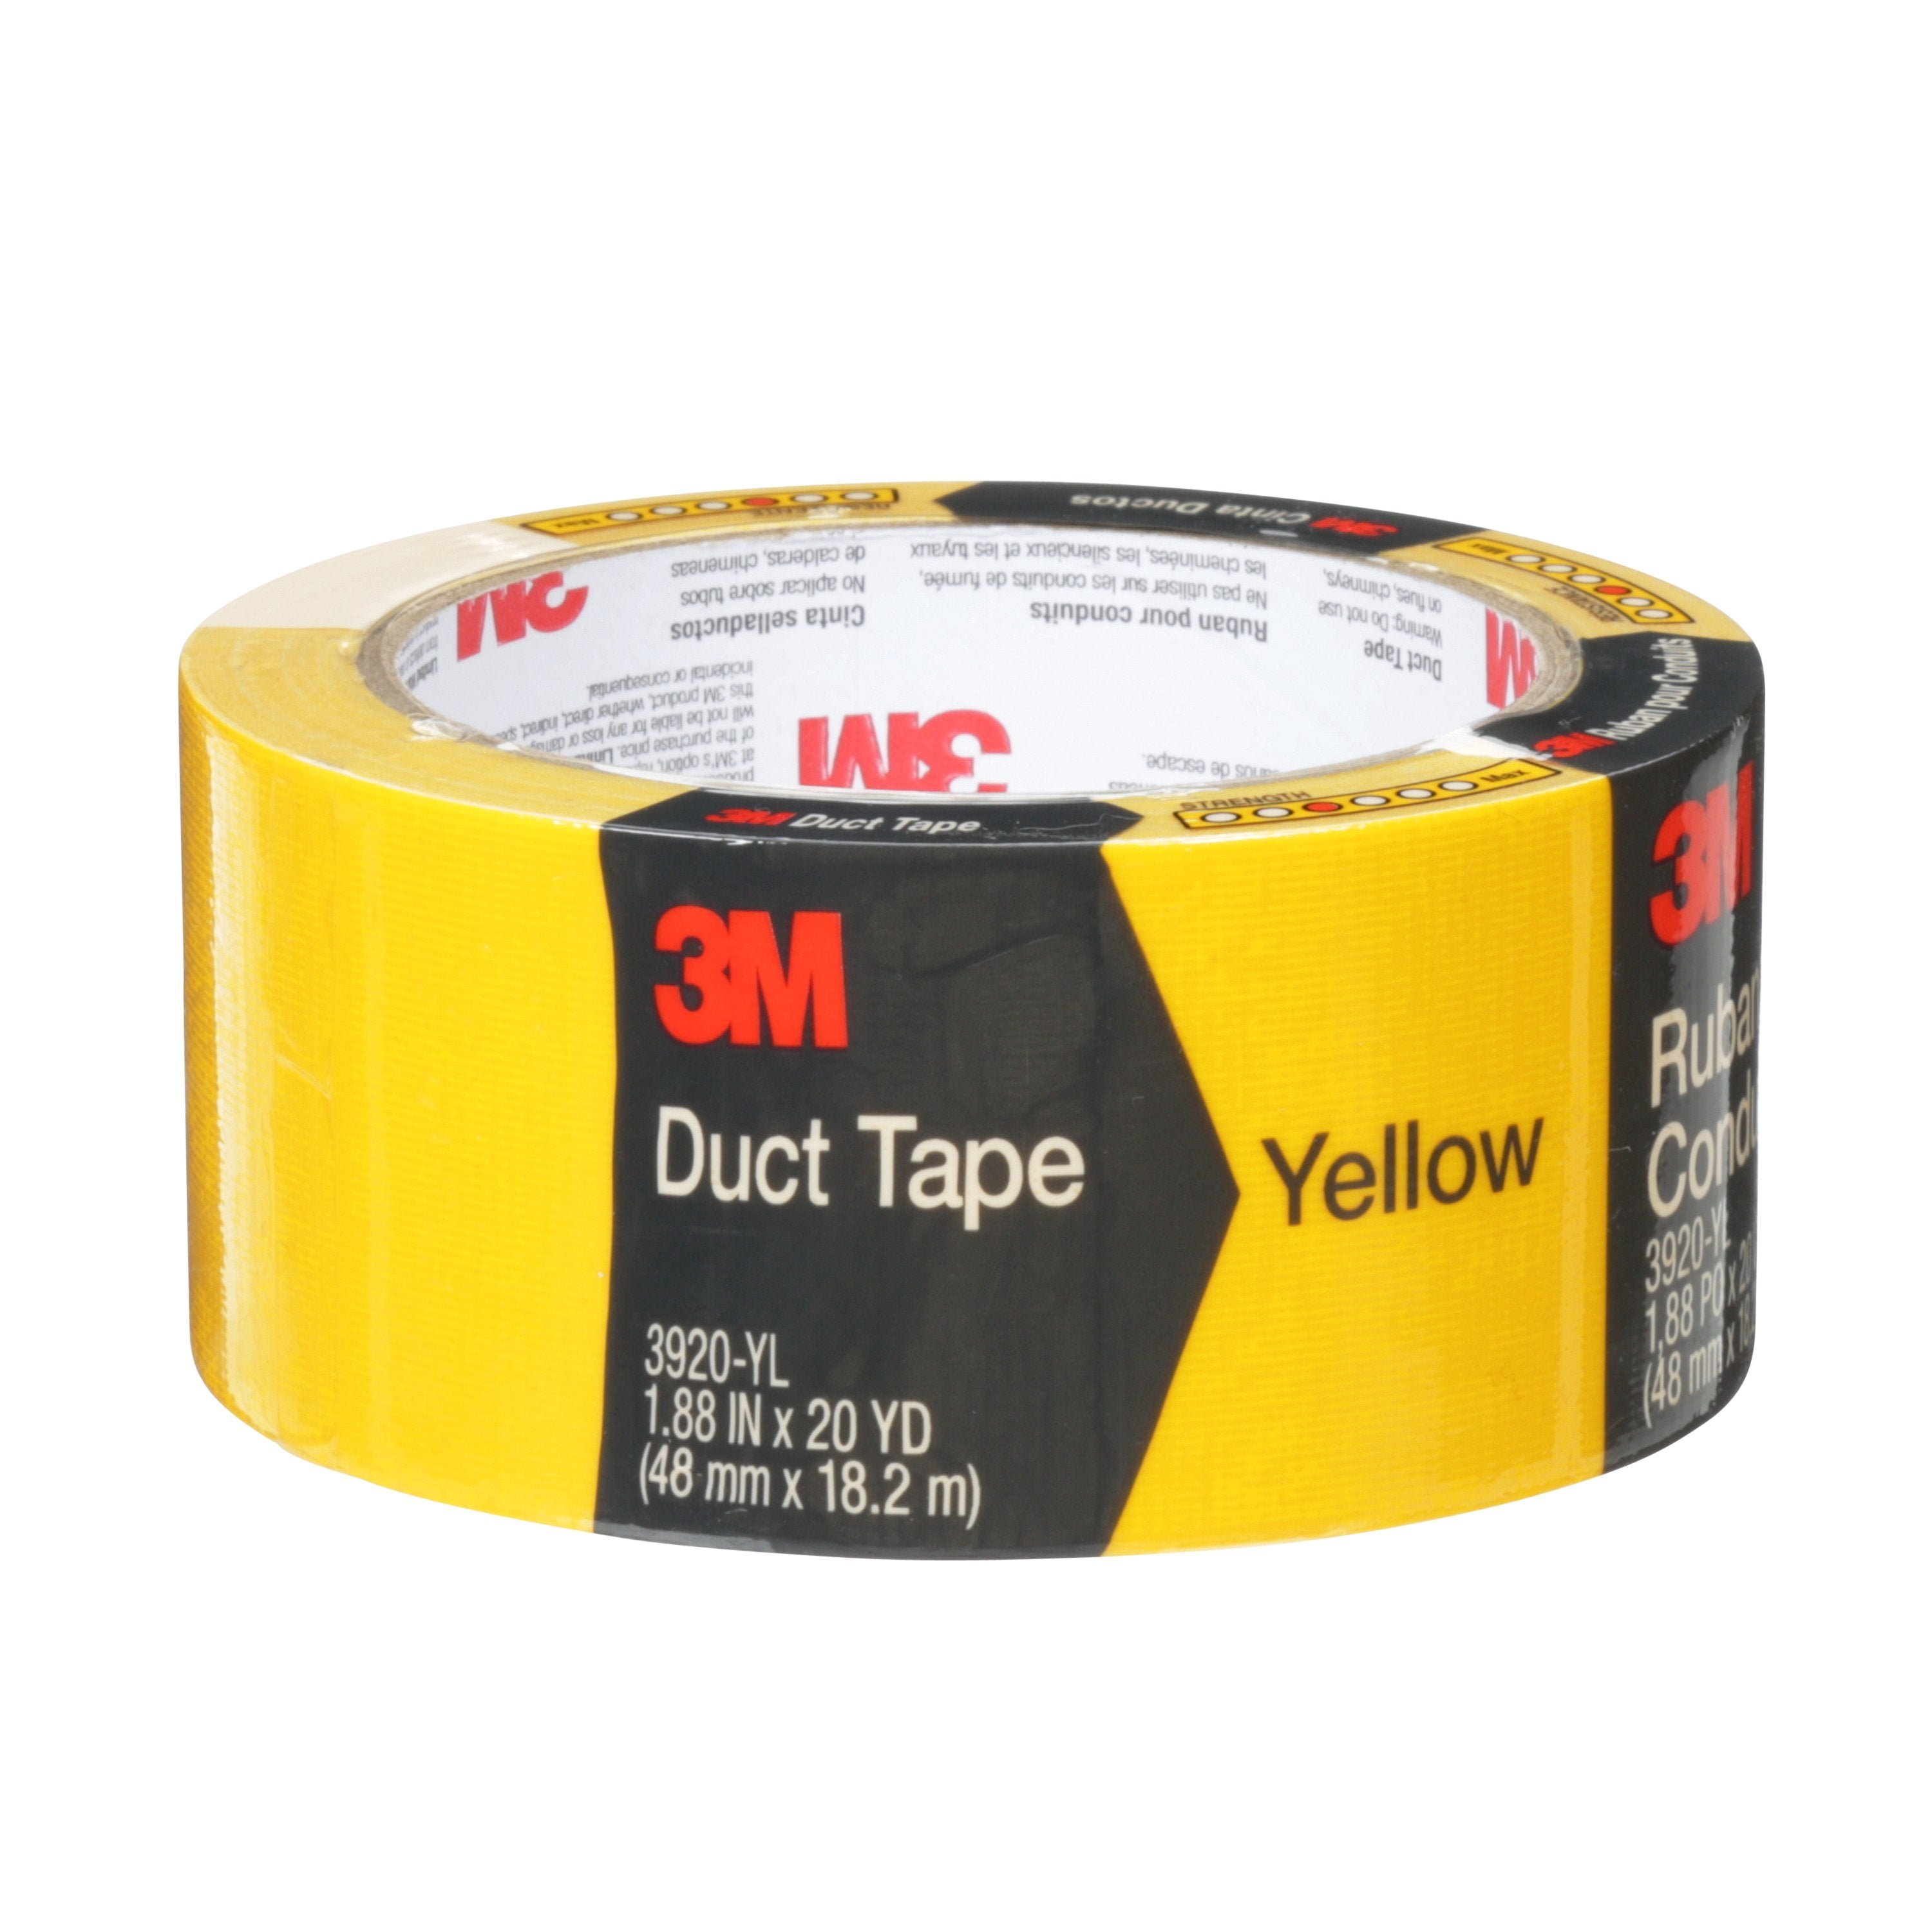 3M 3920-YL Disct Tp Yellow 1.88 Inch x 20yds